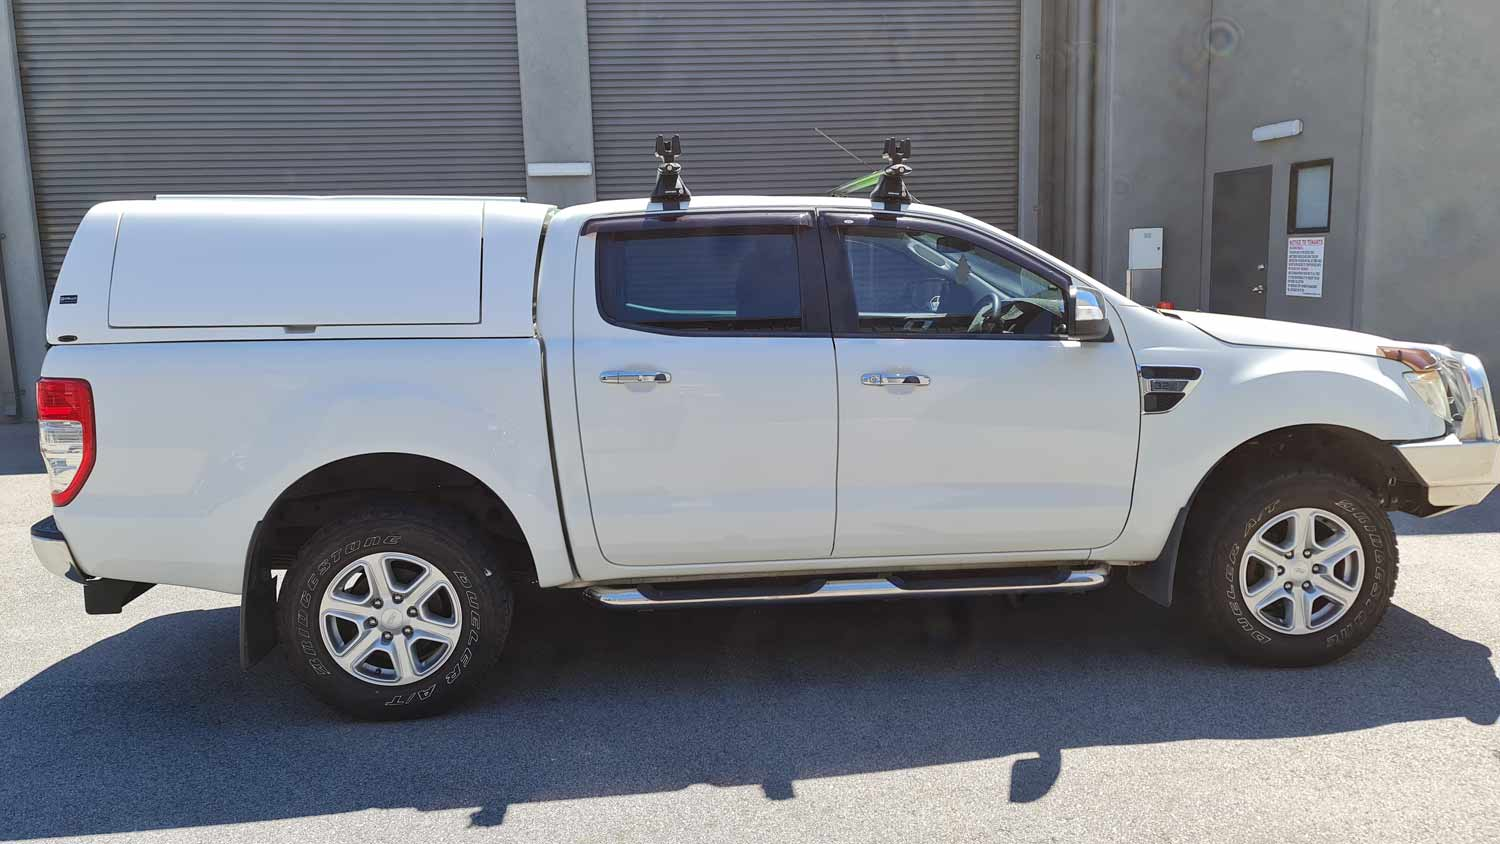 Force Pro Canopy on Ford Ranger 2016 - delux 3x4 - image 4